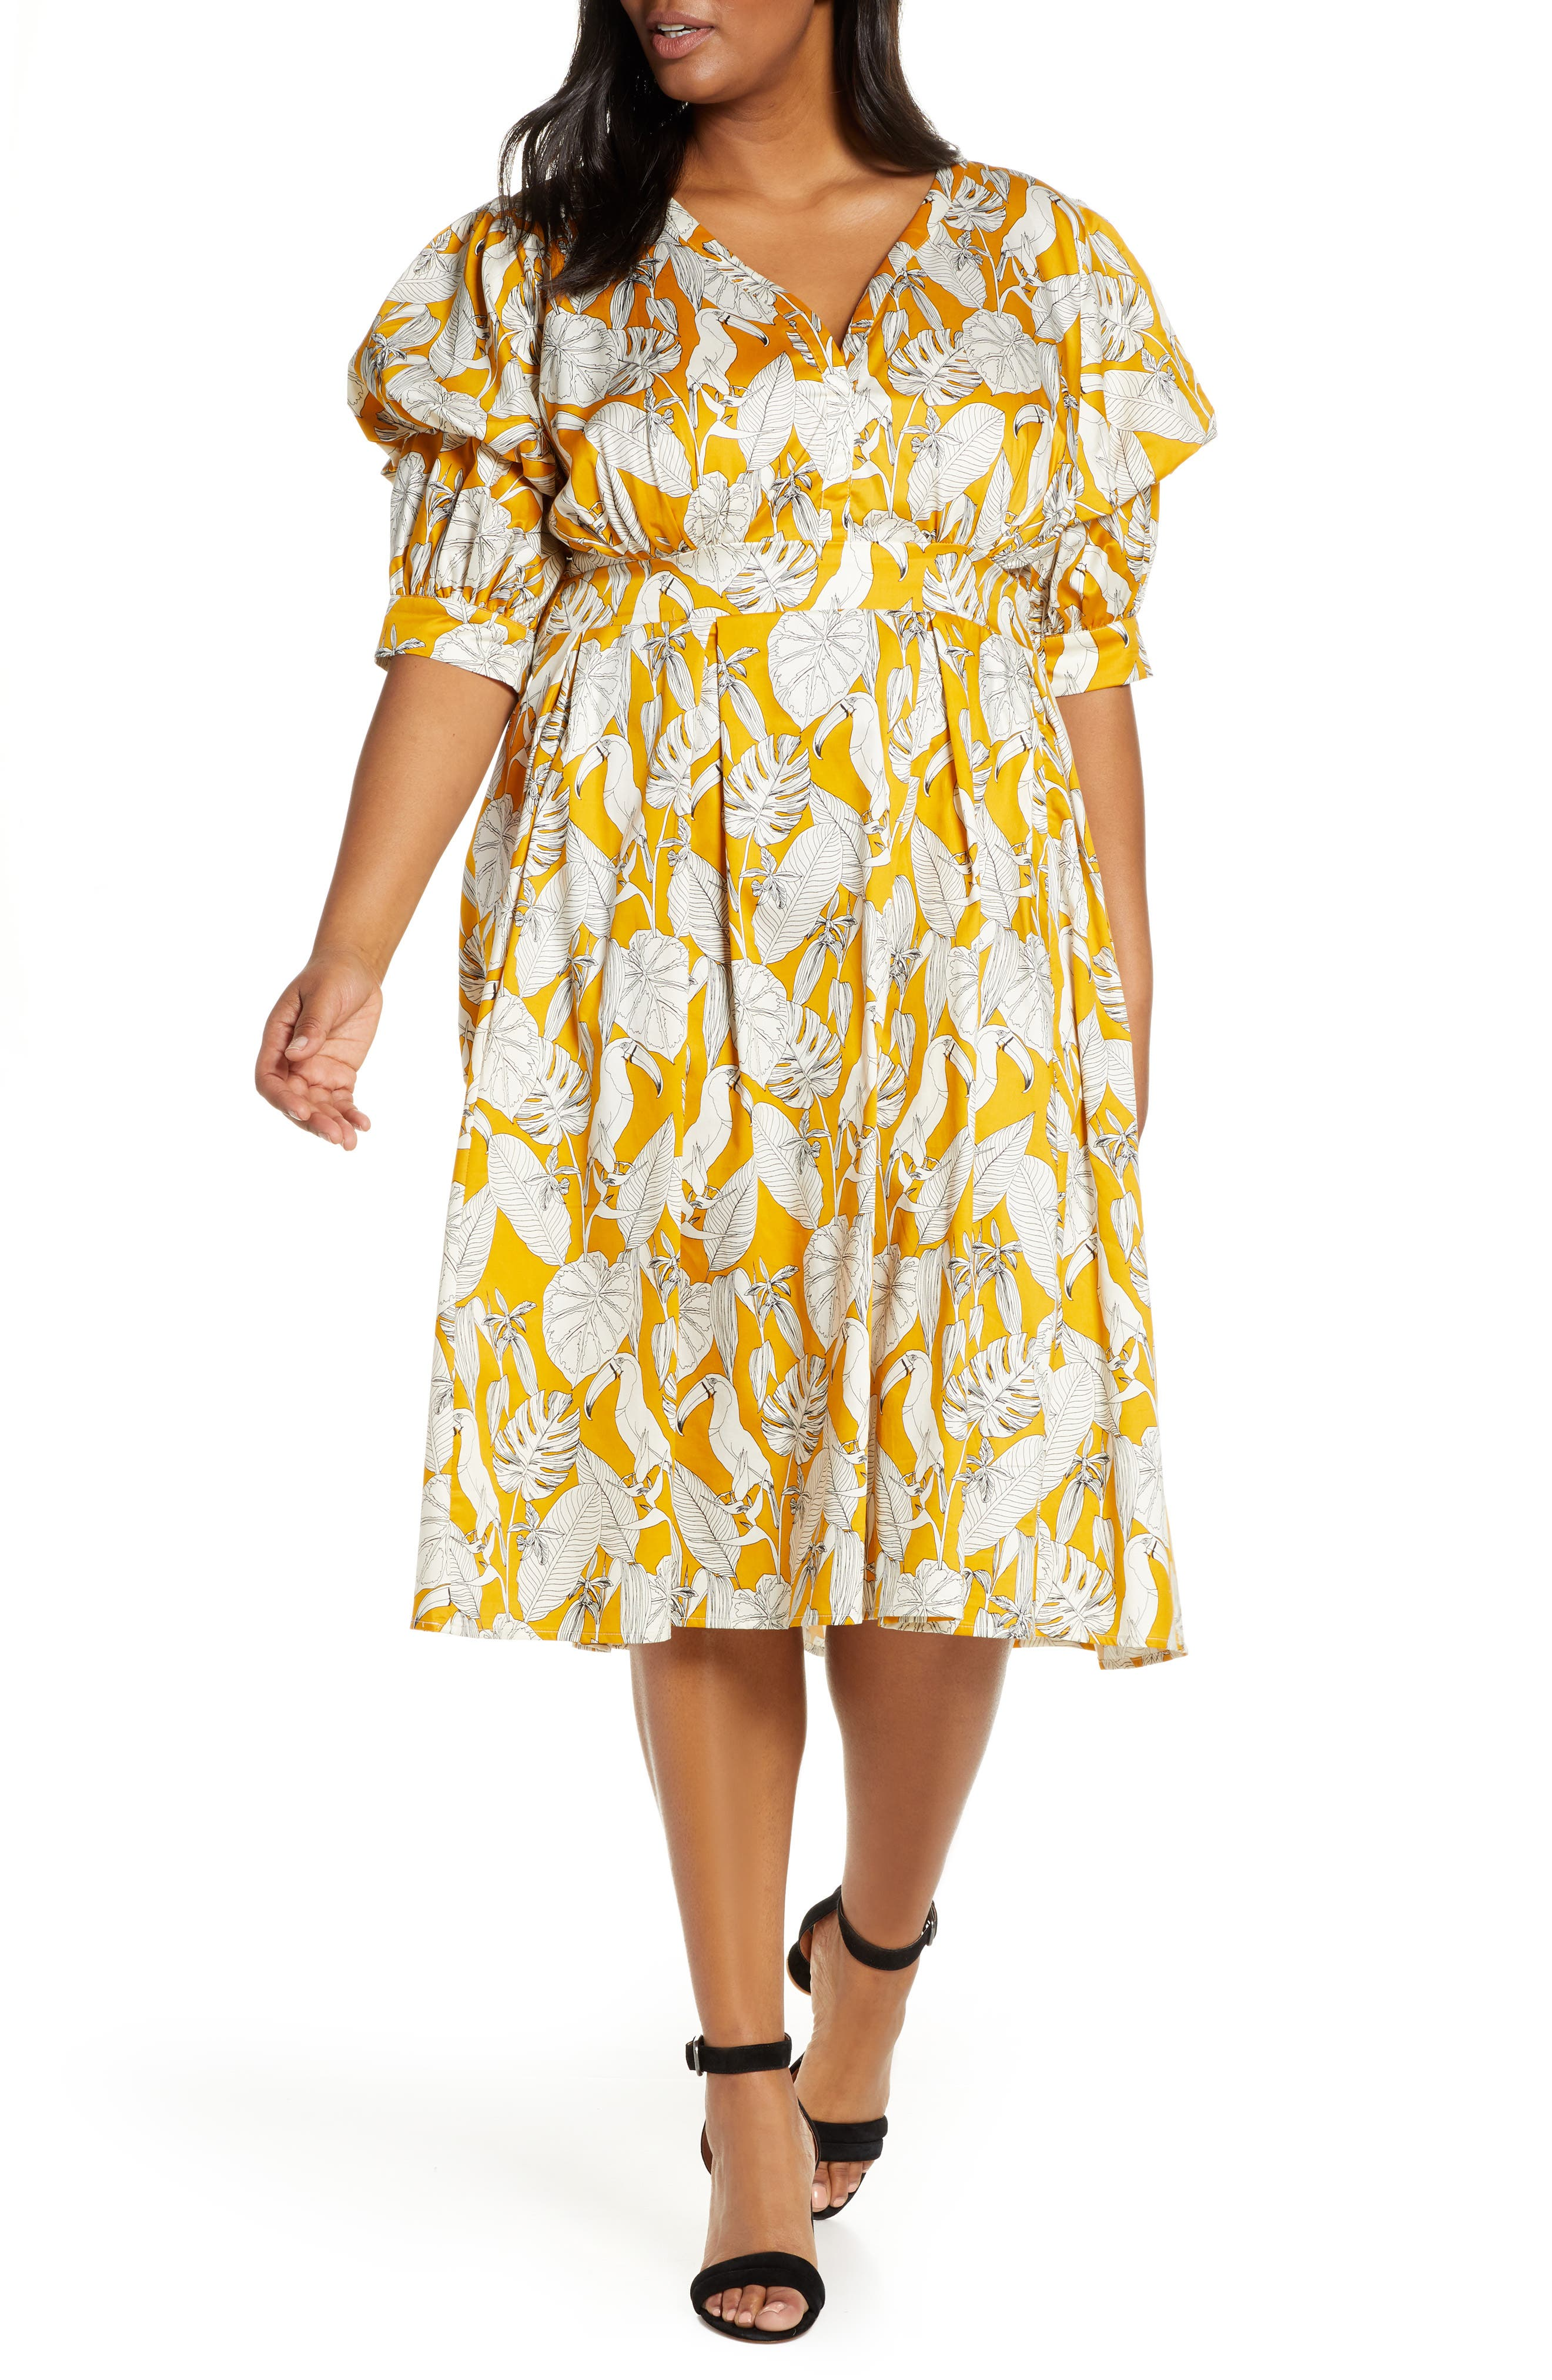 1930s Dresses | 30s Art Deco Dress Plus Size Womens Eloquii Puff Sleeve Fit  Flare Dress Size 26W - Yellow $119.95 AT vintagedancer.com